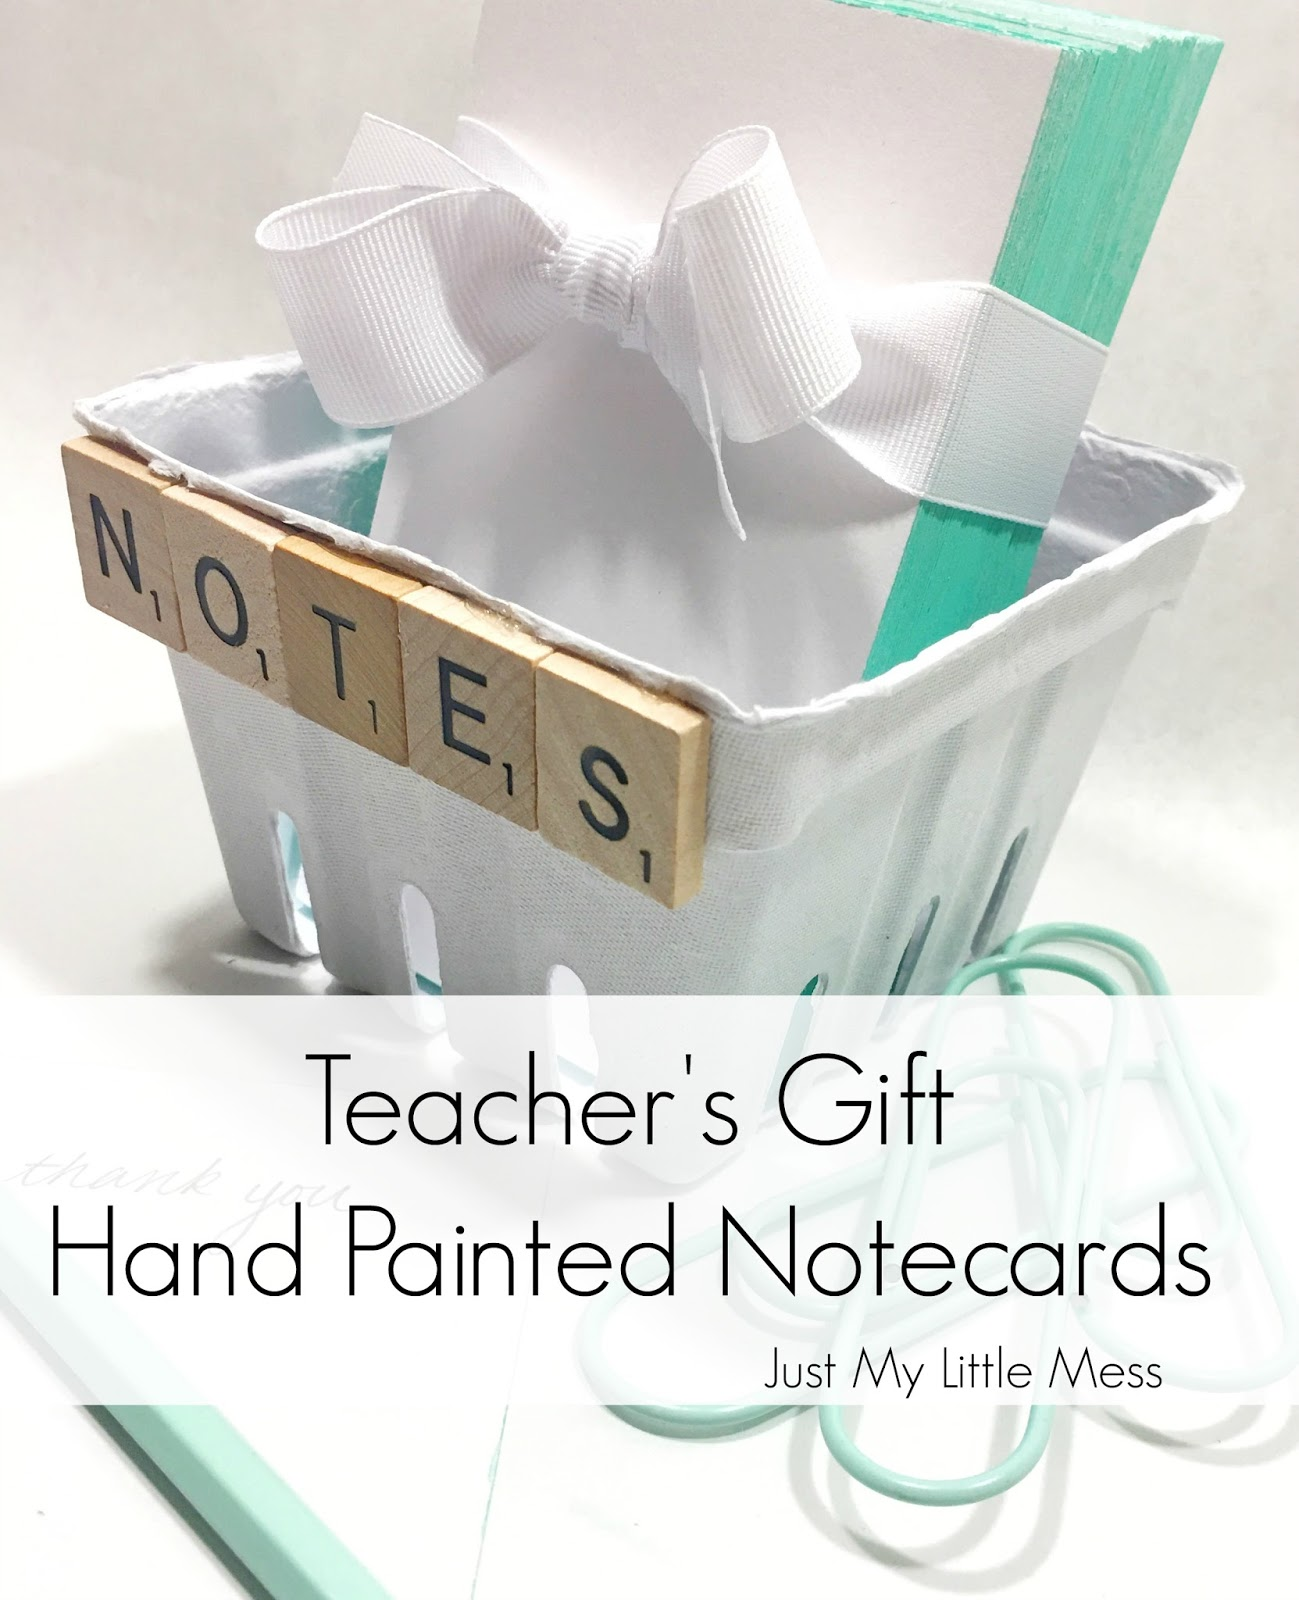 Painted Notecards